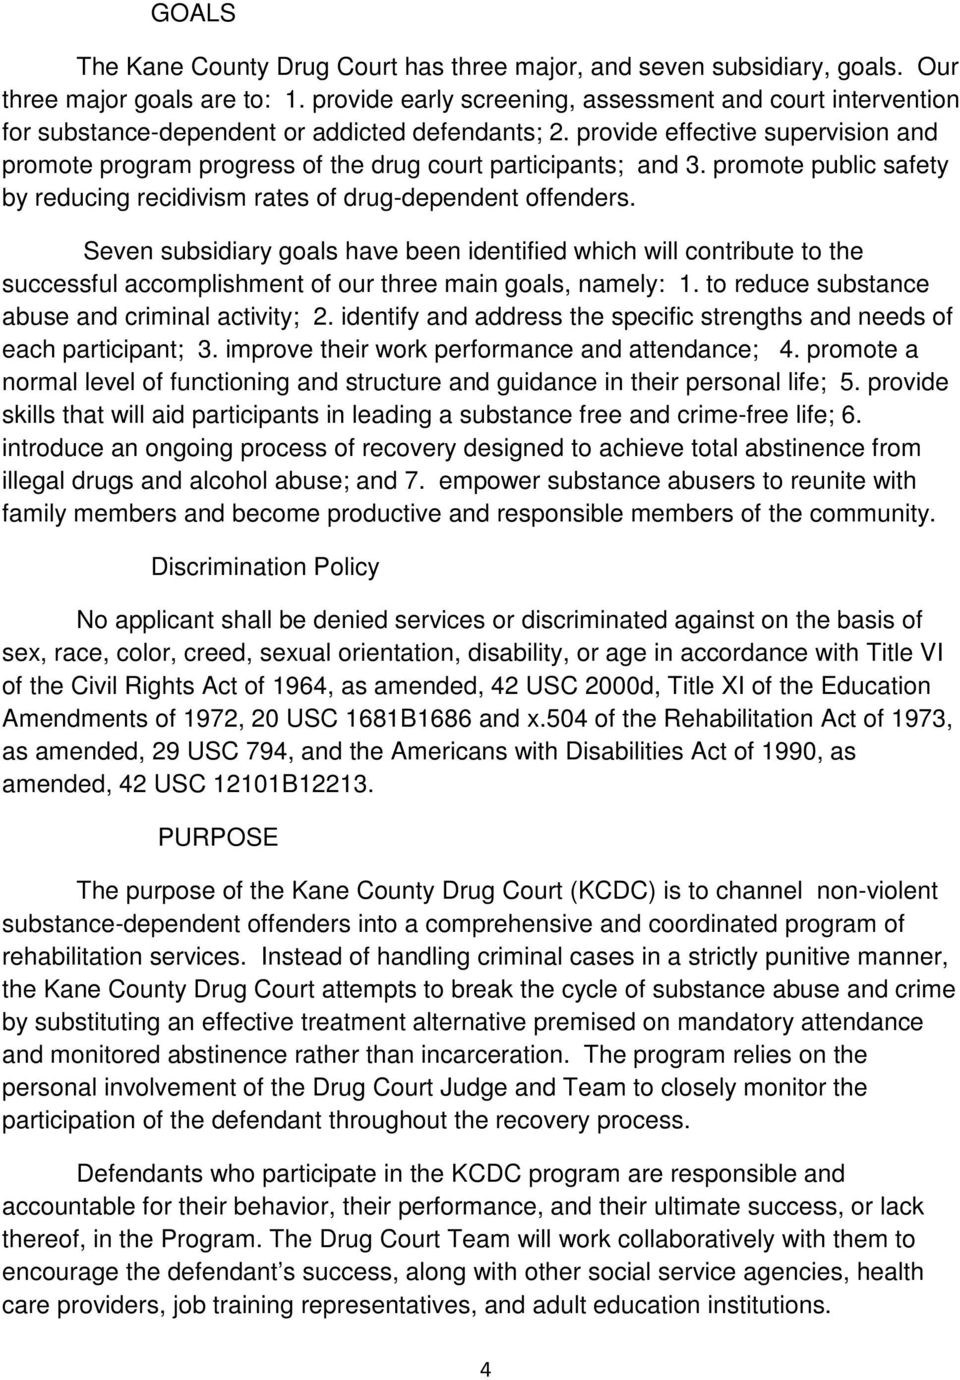 provide effective supervision and promote program progress of the drug court participants; and 3. promote public safety by reducing recidivism rates of drug-dependent offenders.